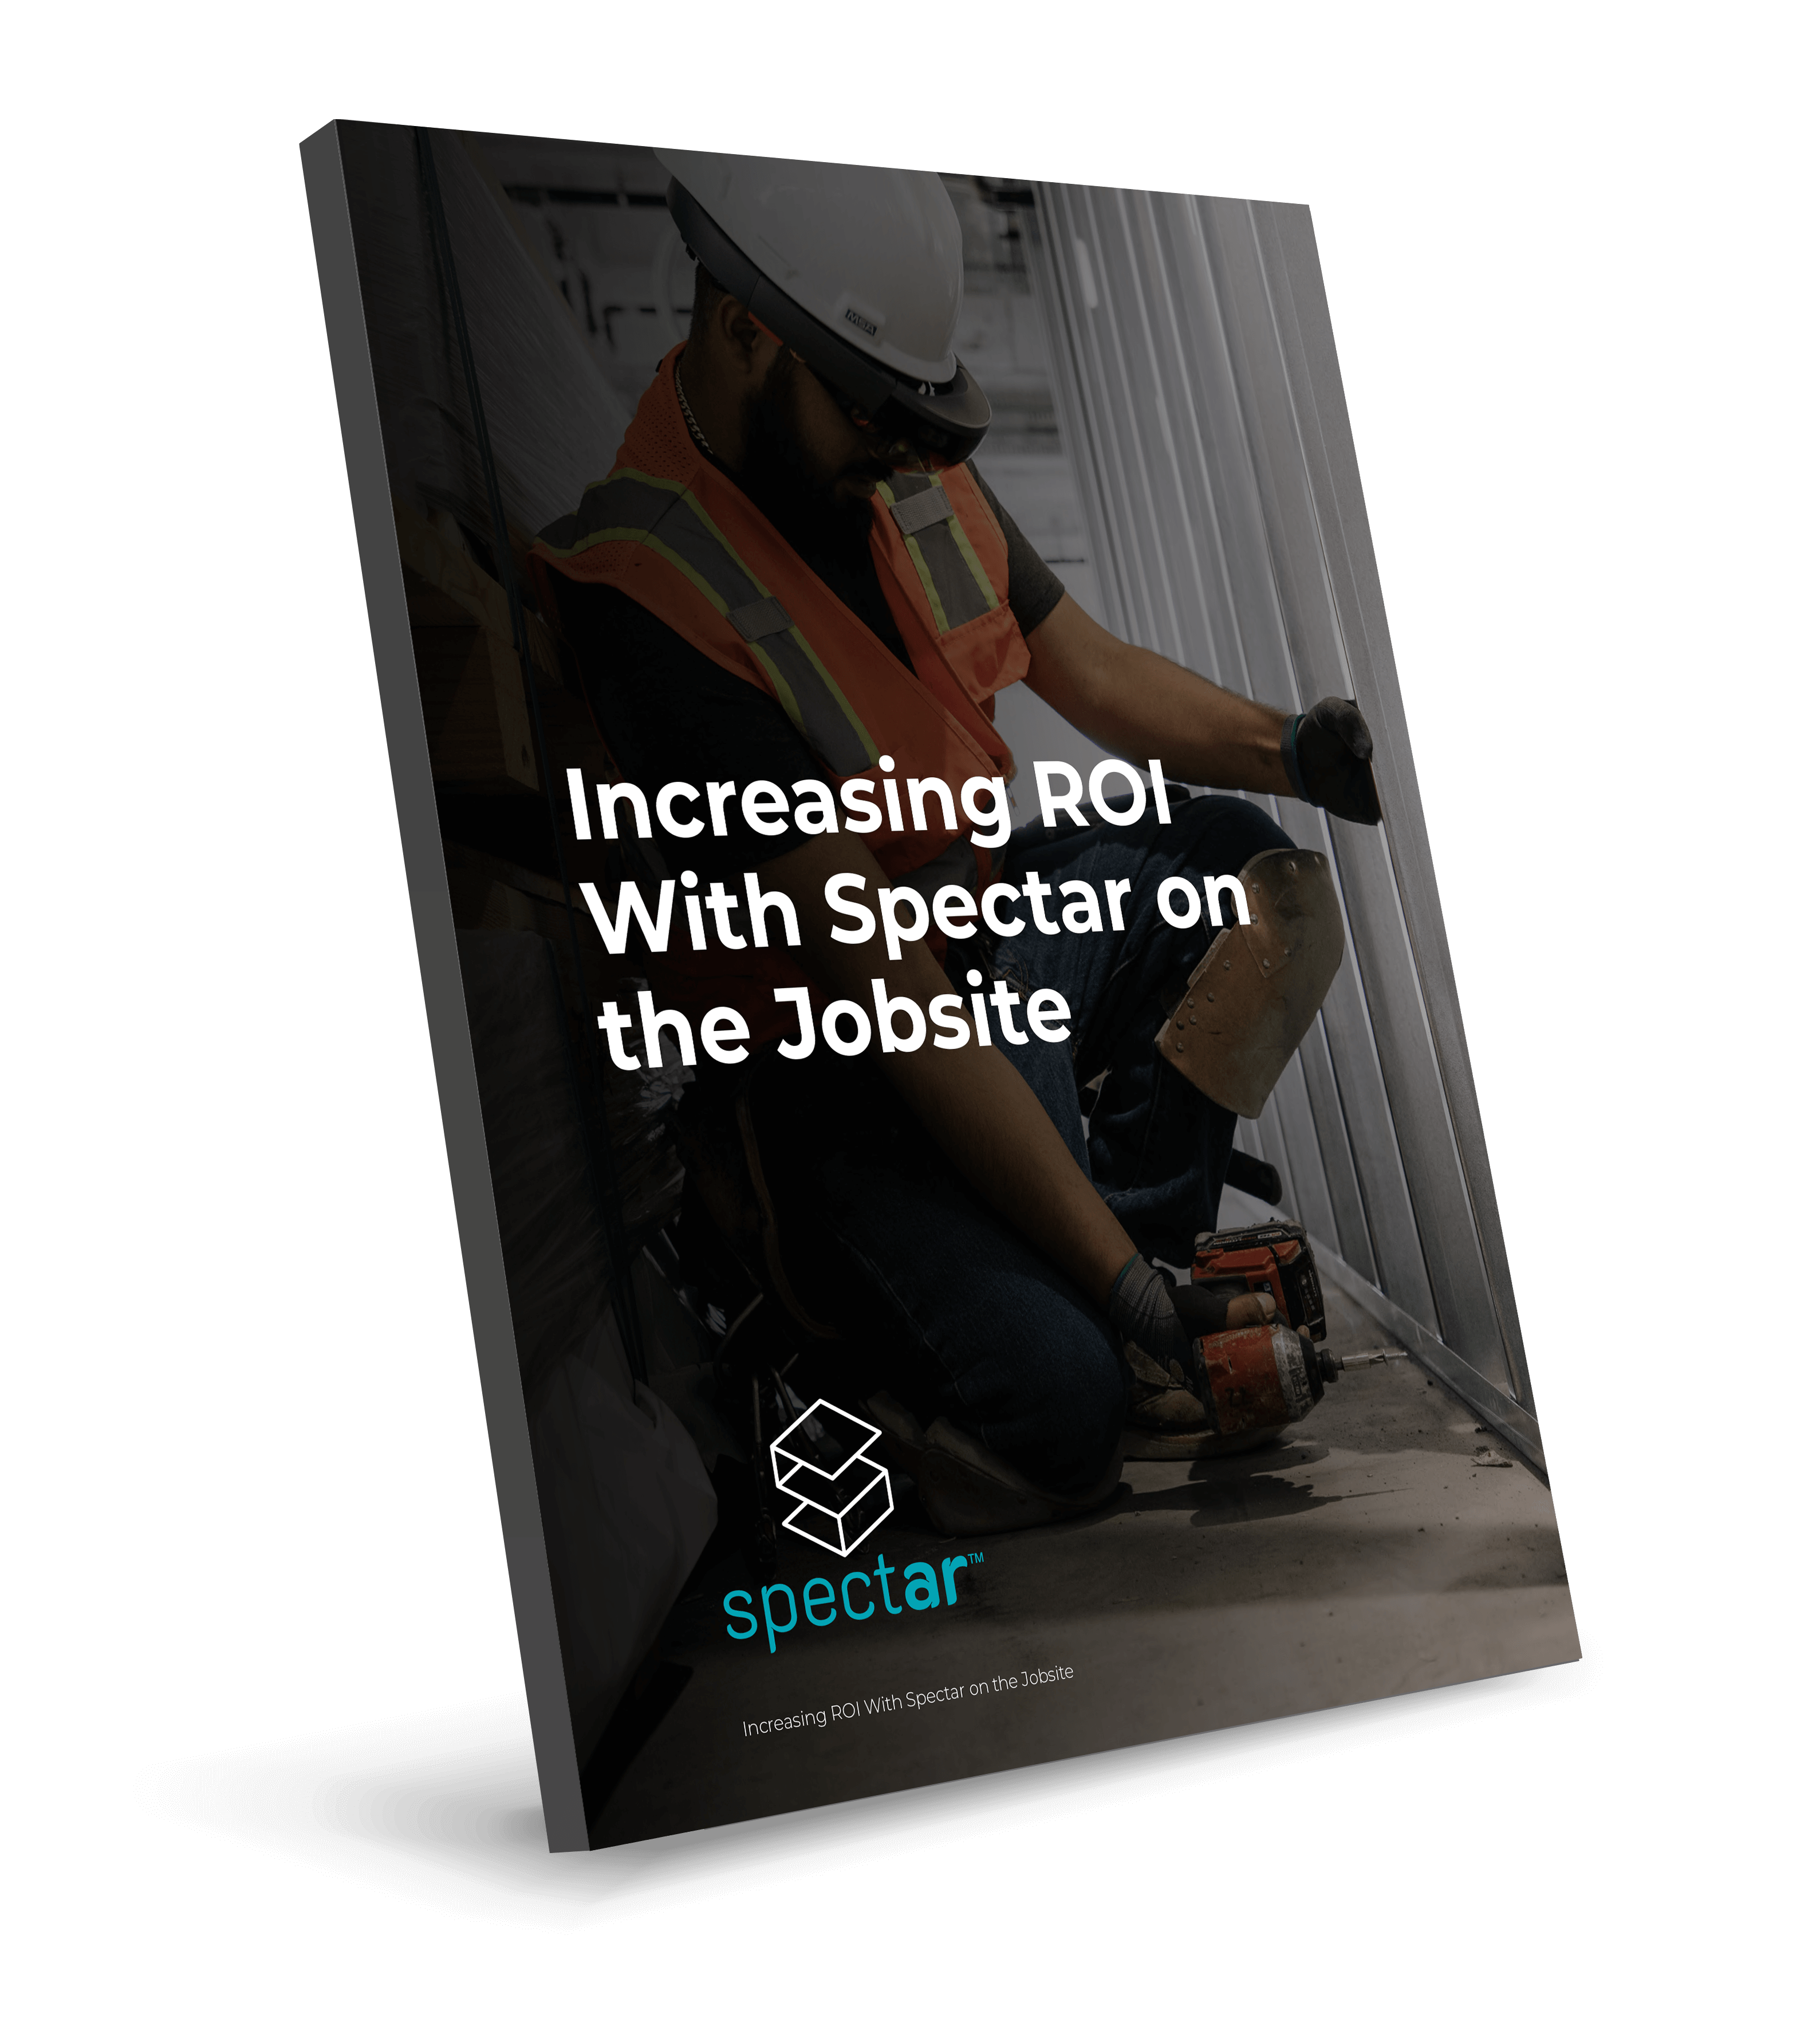 Increasing ROI with Spectar on the Jobsite